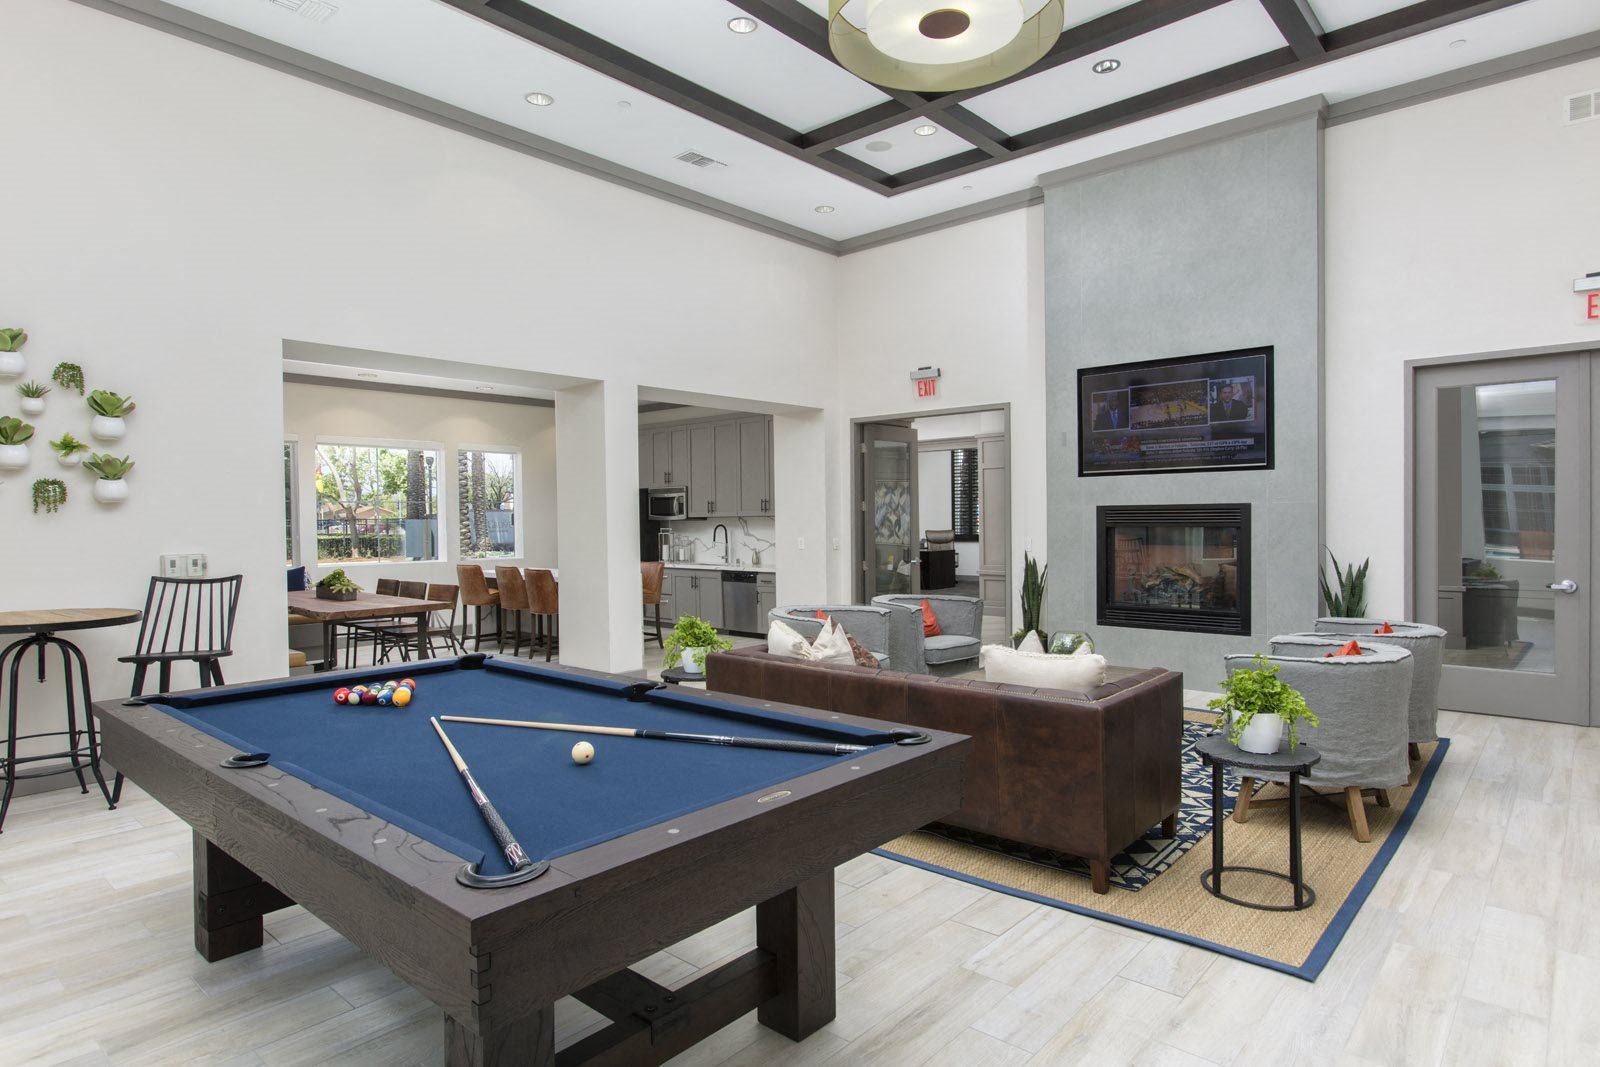 Clubroom with seating area, fireplace, TV, and pool table